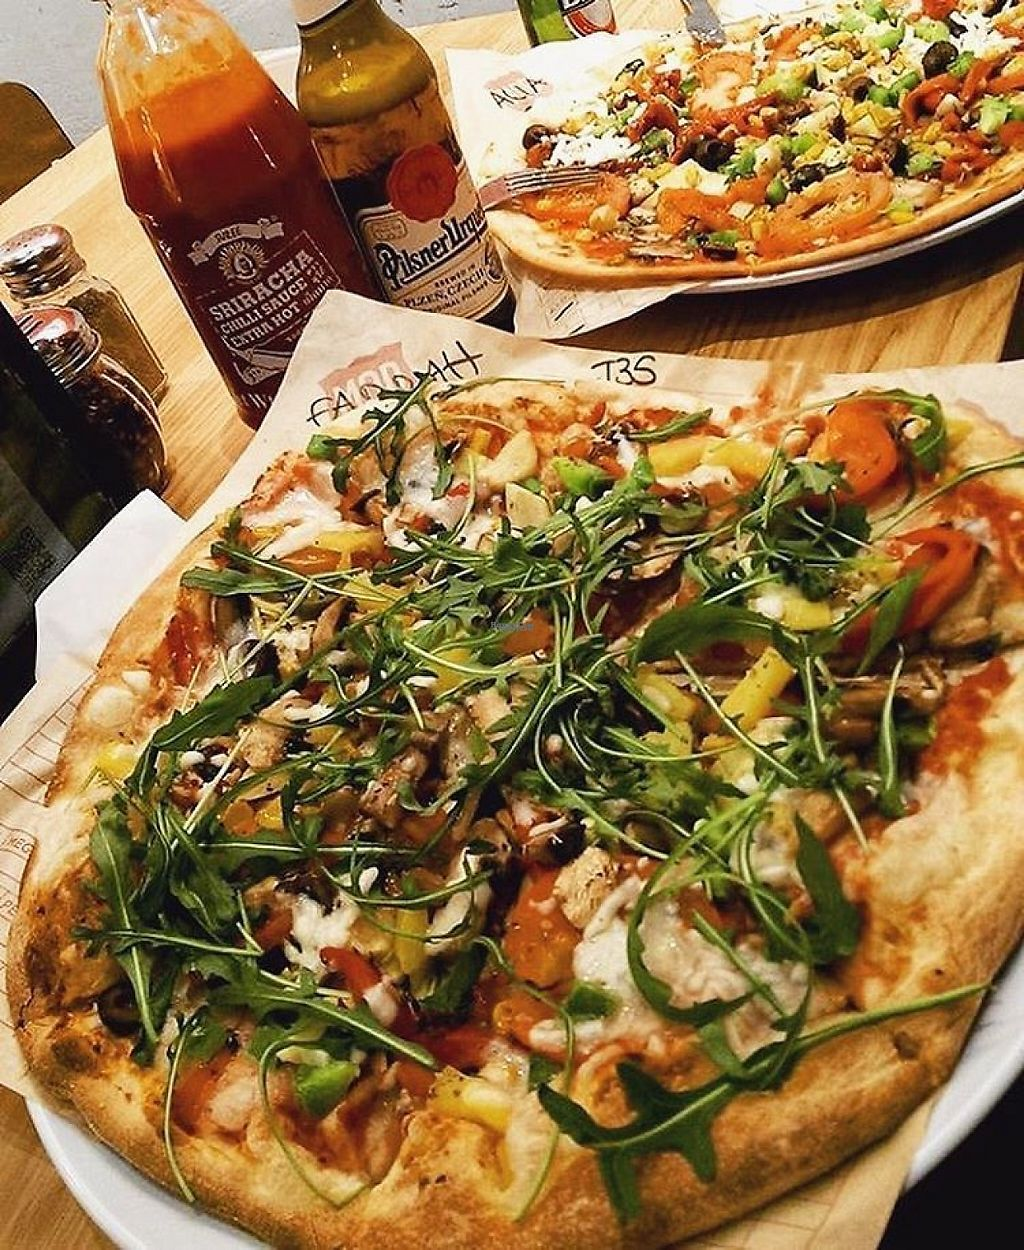 """Photo of Mod Pizza  by <a href=""""/members/profile/NicMOD"""">NicMOD</a> <br/>Build your own Vegan Pizza, with unlimited toppings and dairy free cheese!  <br/> February 15, 2017  - <a href='/contact/abuse/image/87201/226845'>Report</a>"""